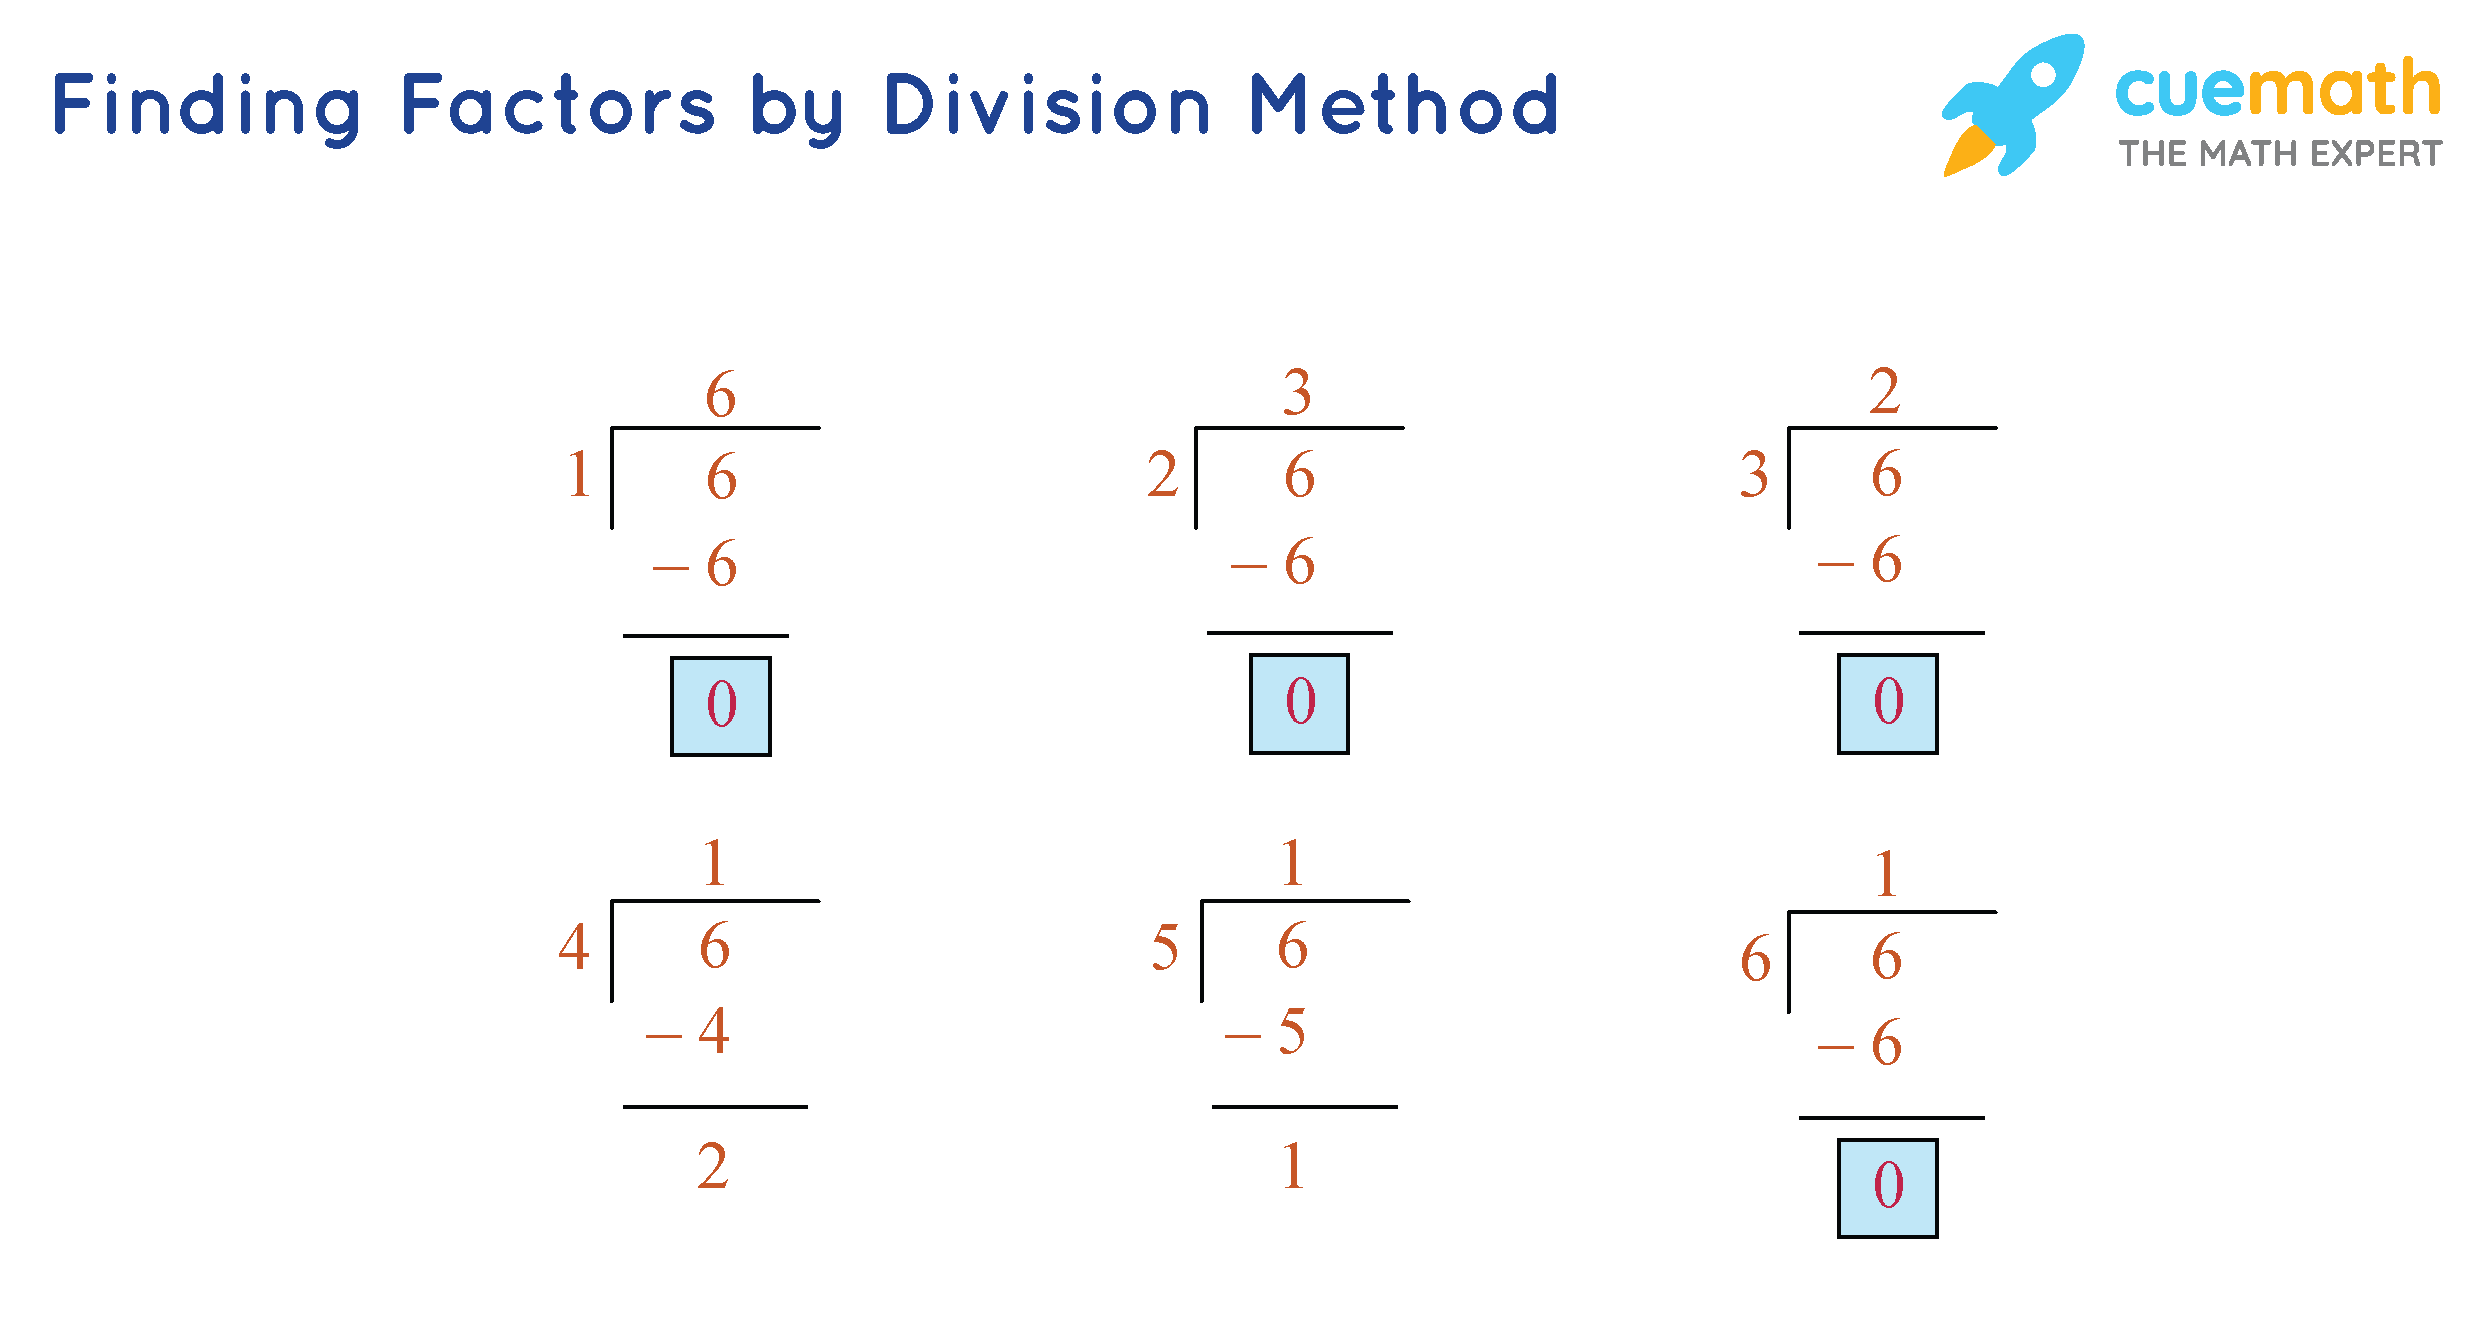 Finding Factors by Division Method